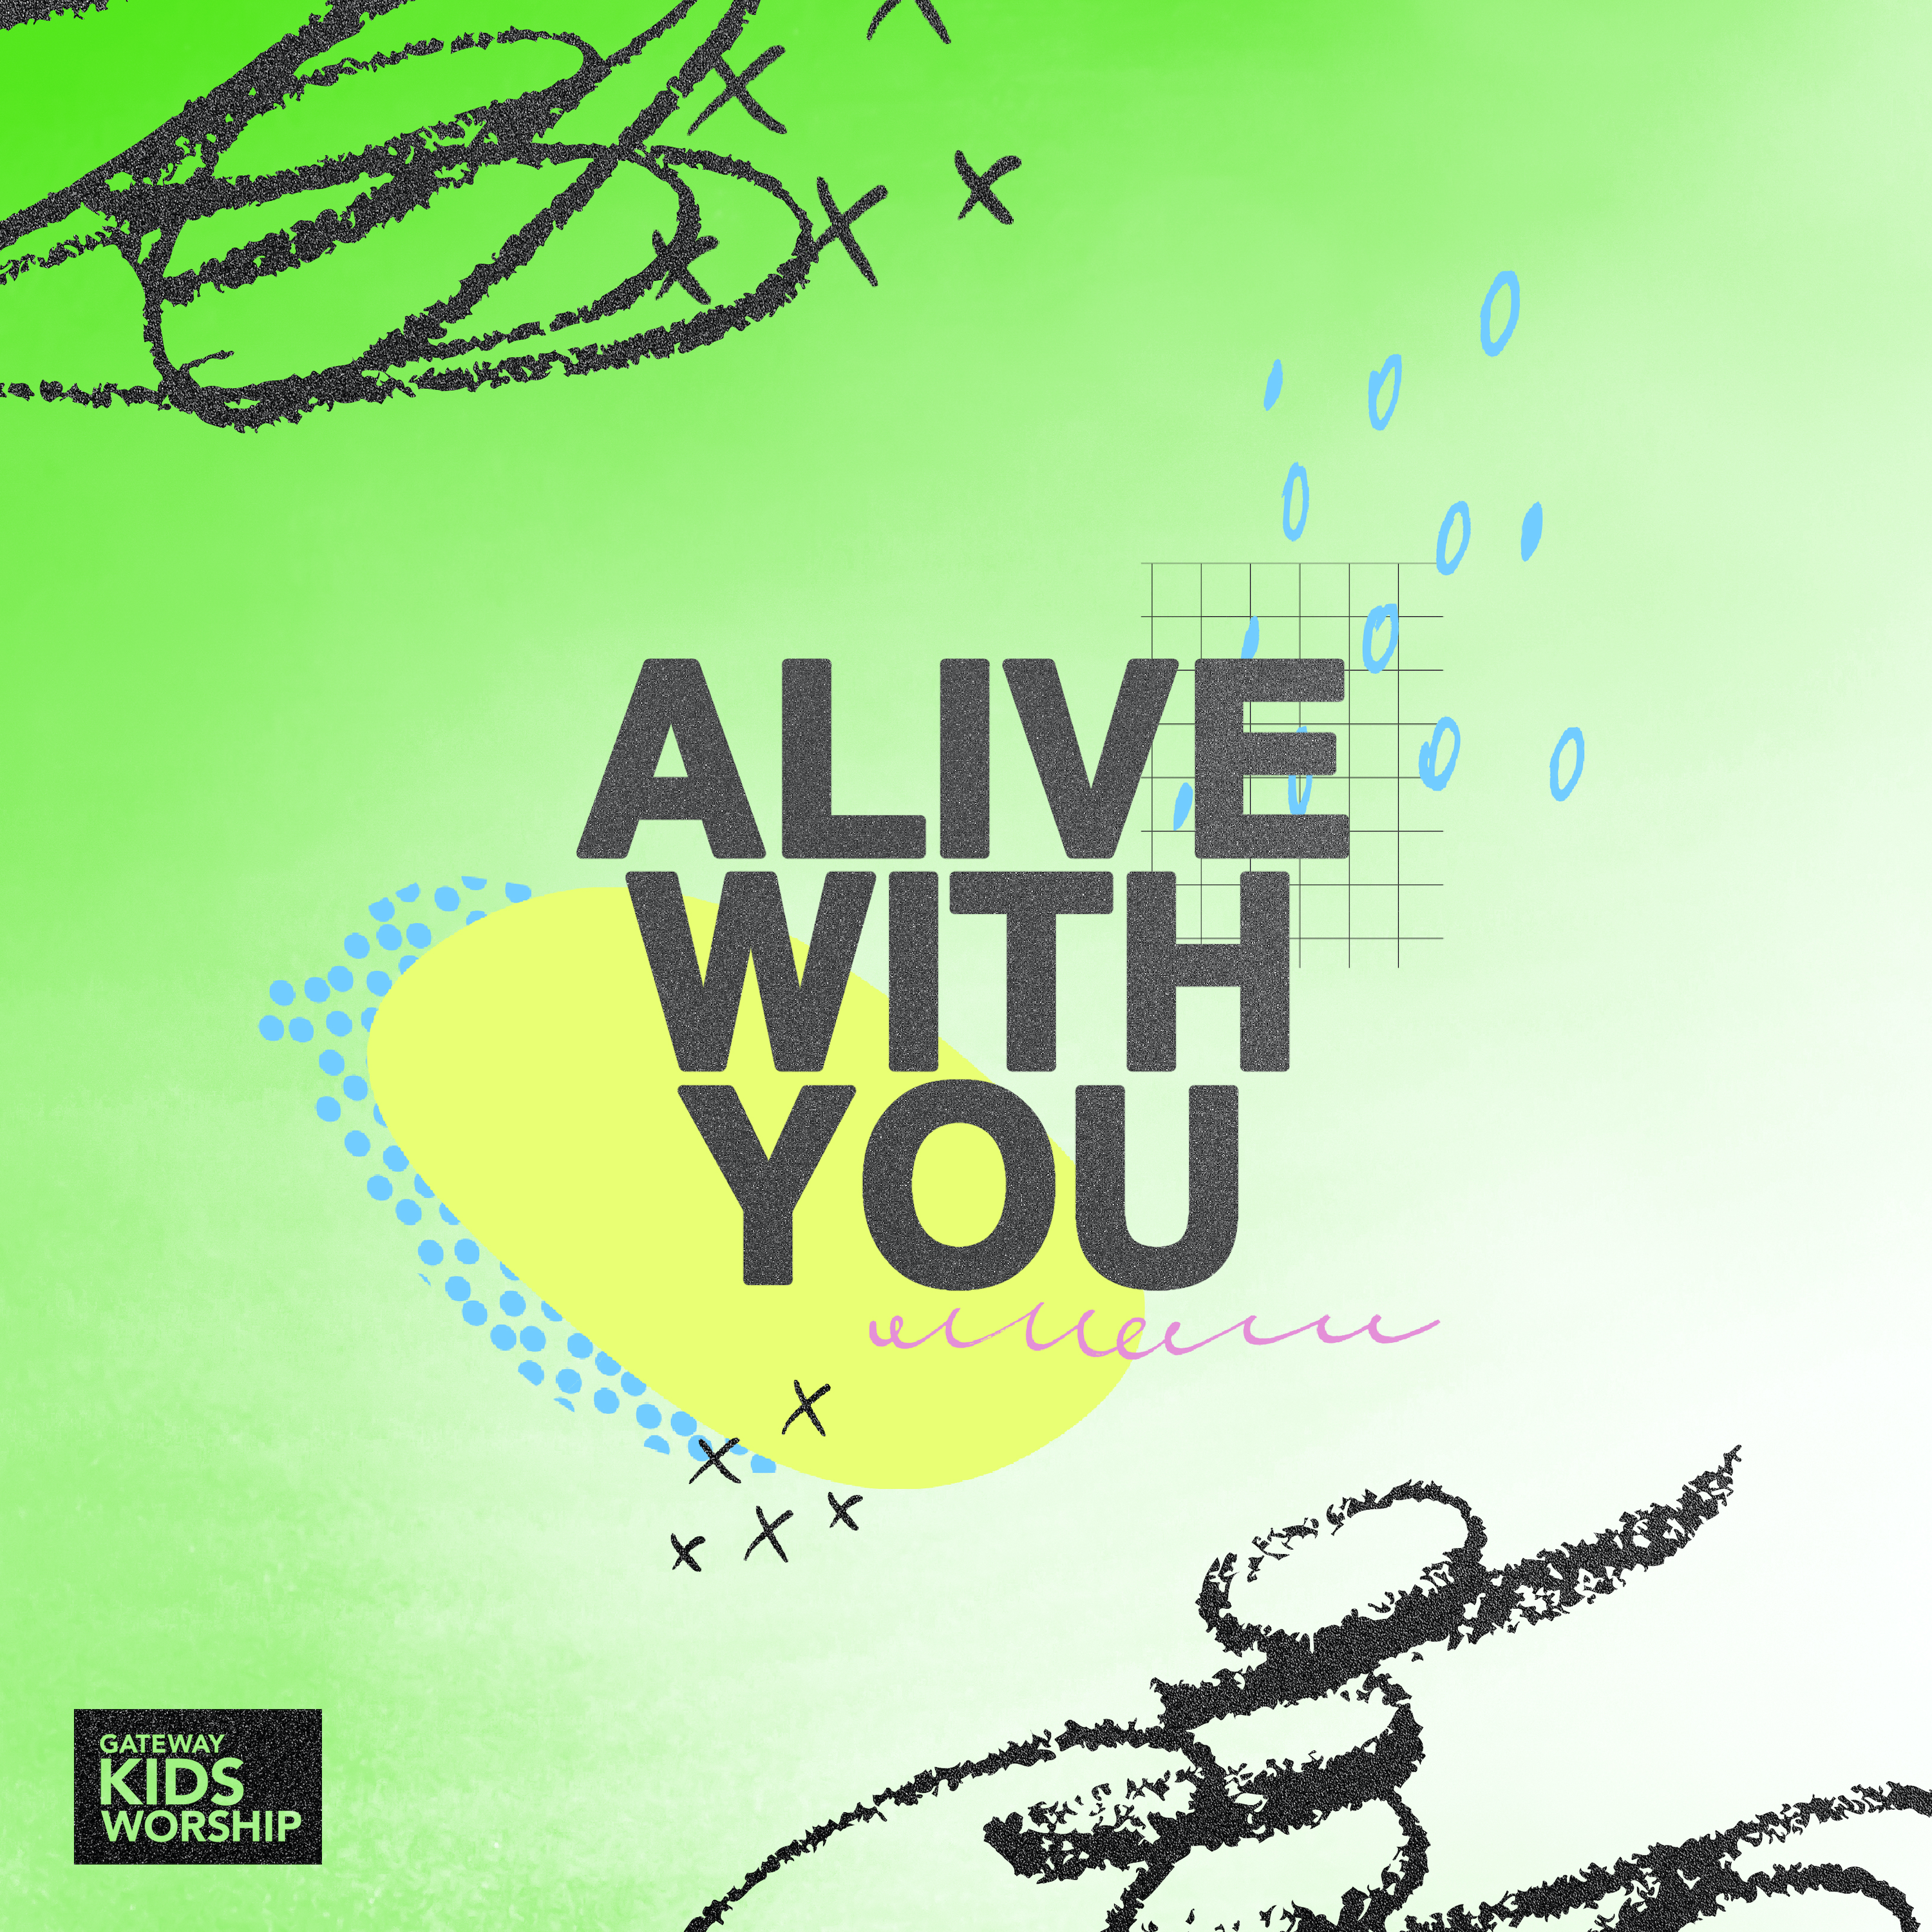 Alive with You | Gateway Kids Worship